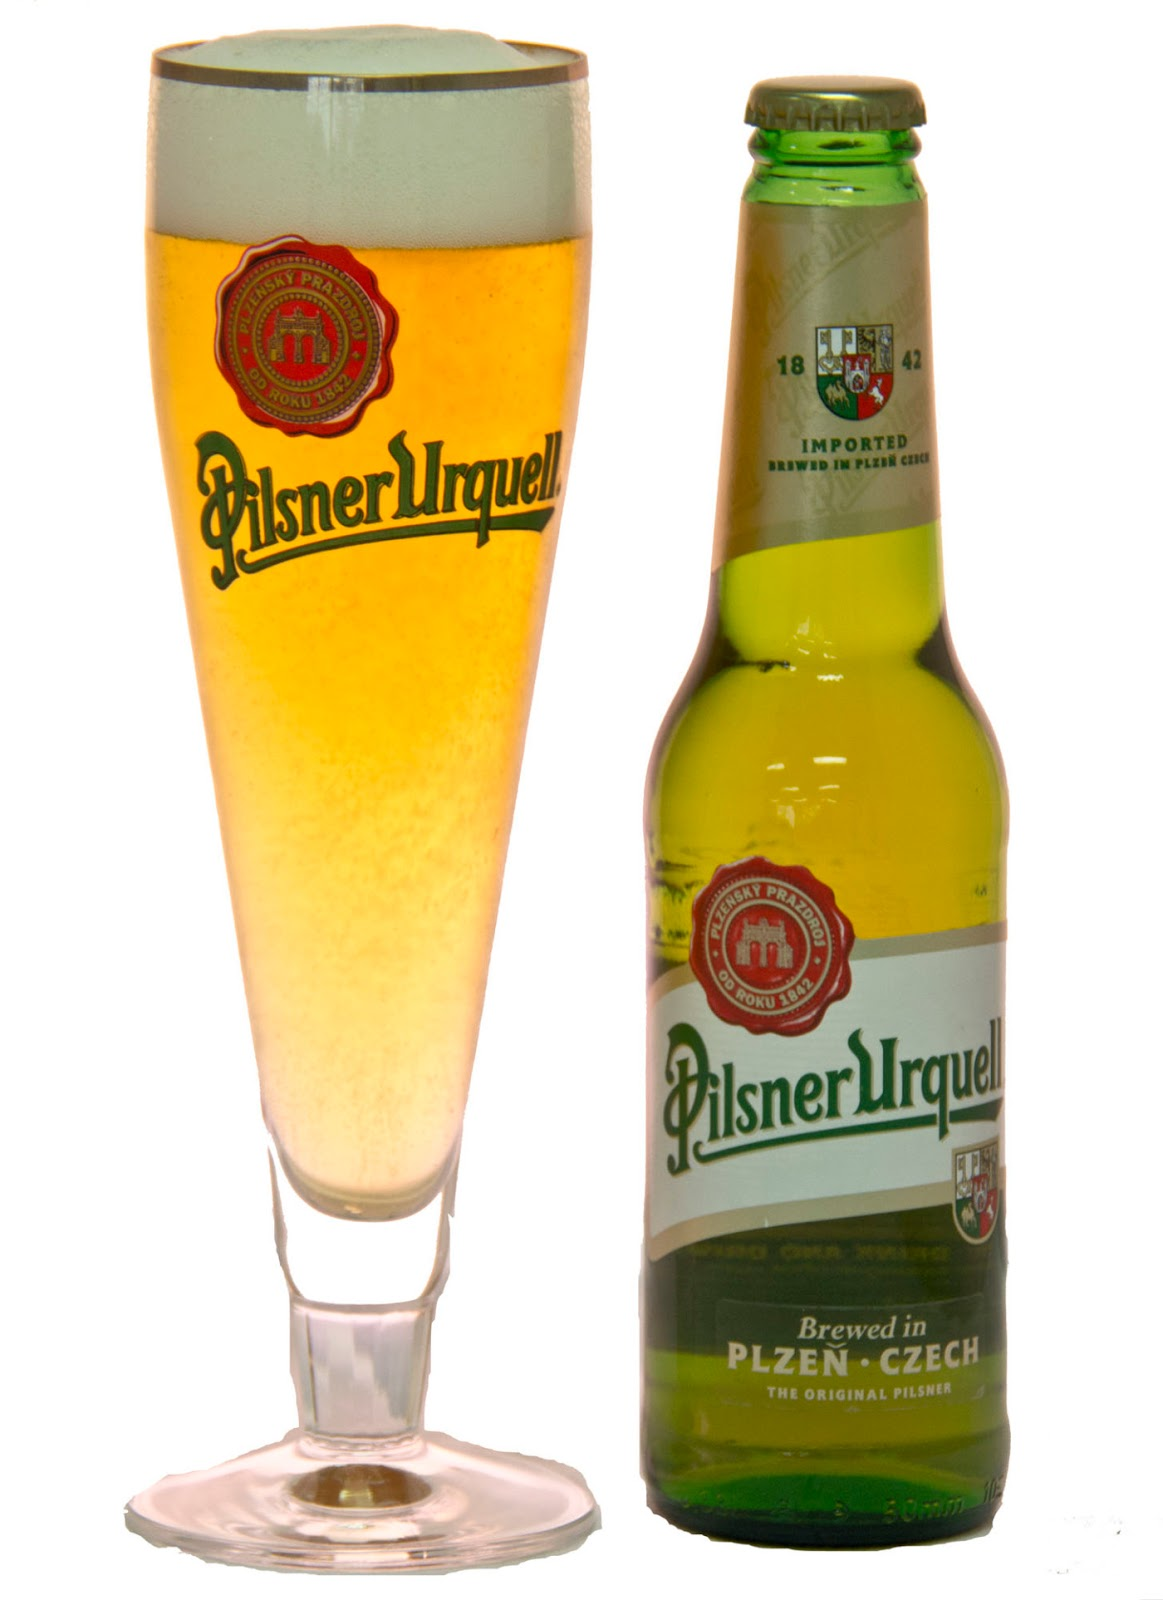 from Chance pilsner urquell game photo nu